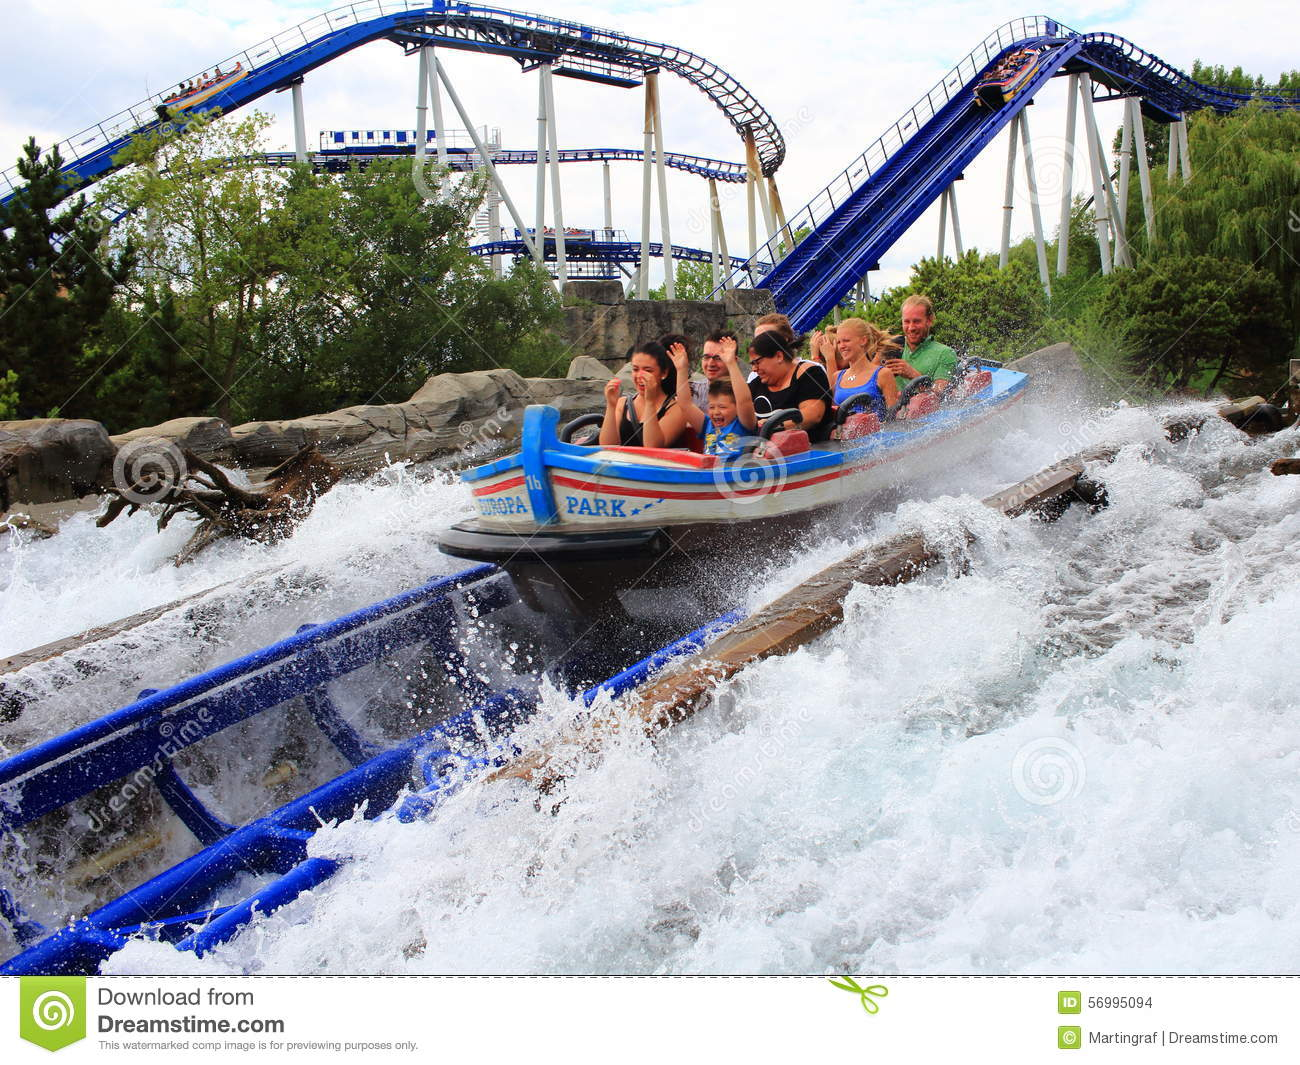 Speeding Water Roller Coaster Family Fun Editorial Stock Image - Image: 56995094